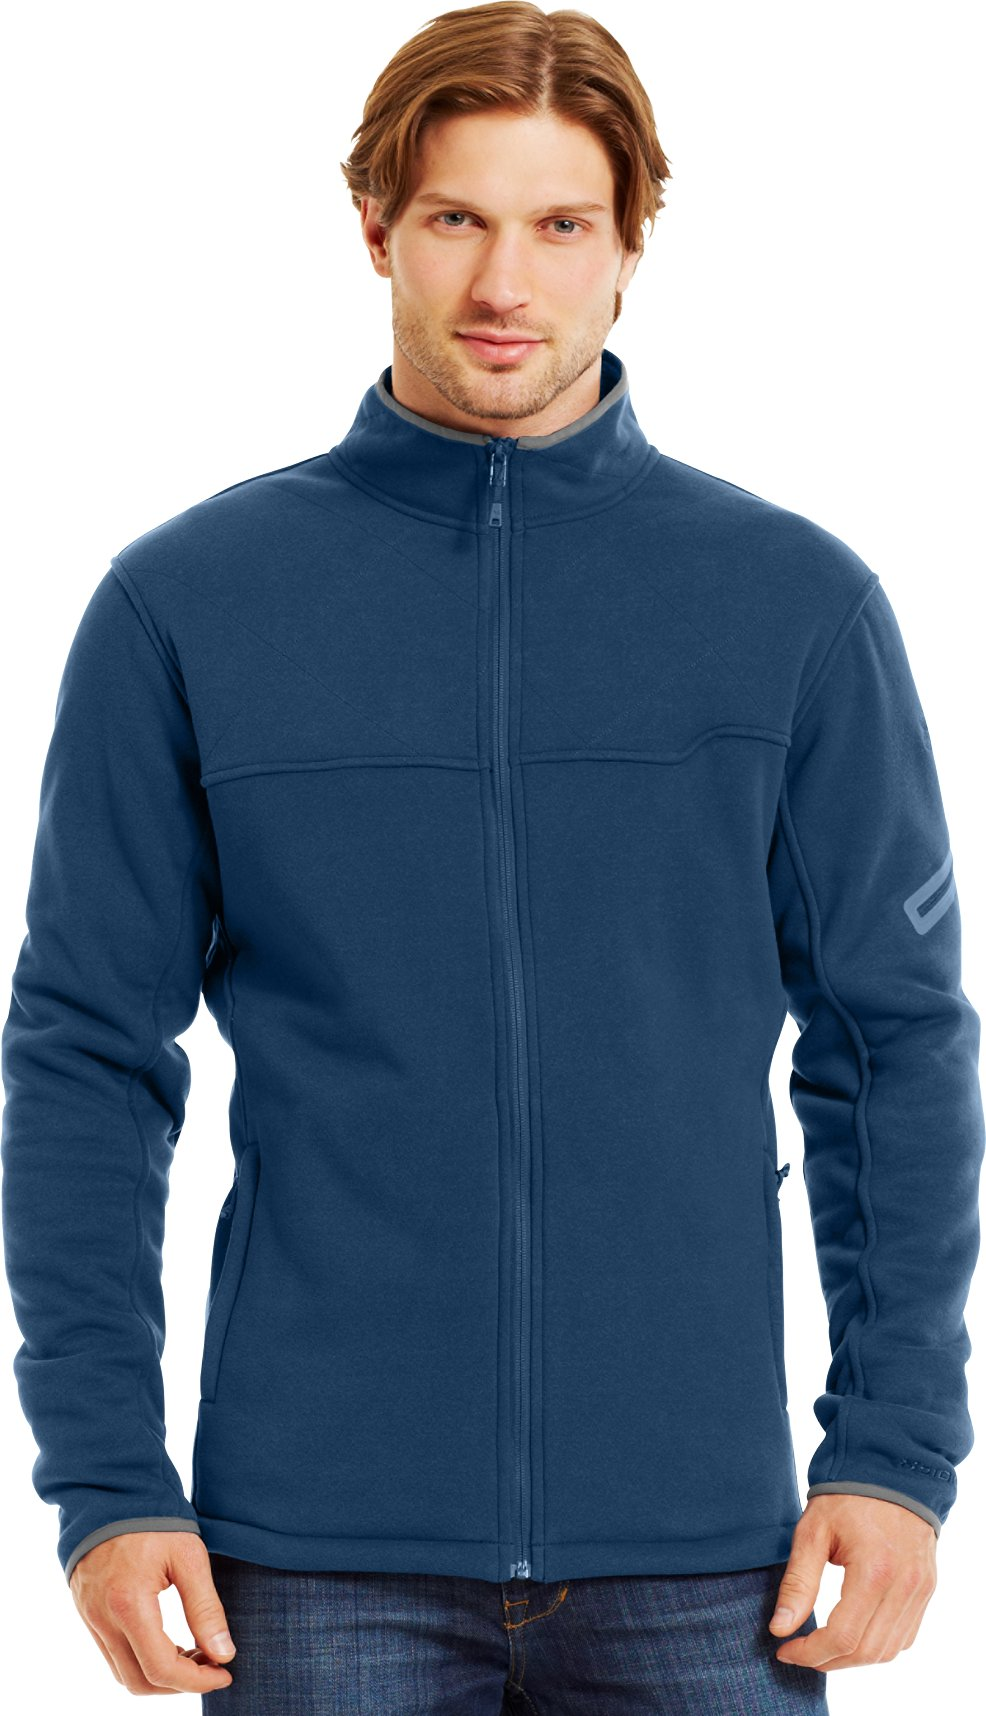 Men's Extreme ColdGear® Jacket, PETROL BLUE, zoomed image